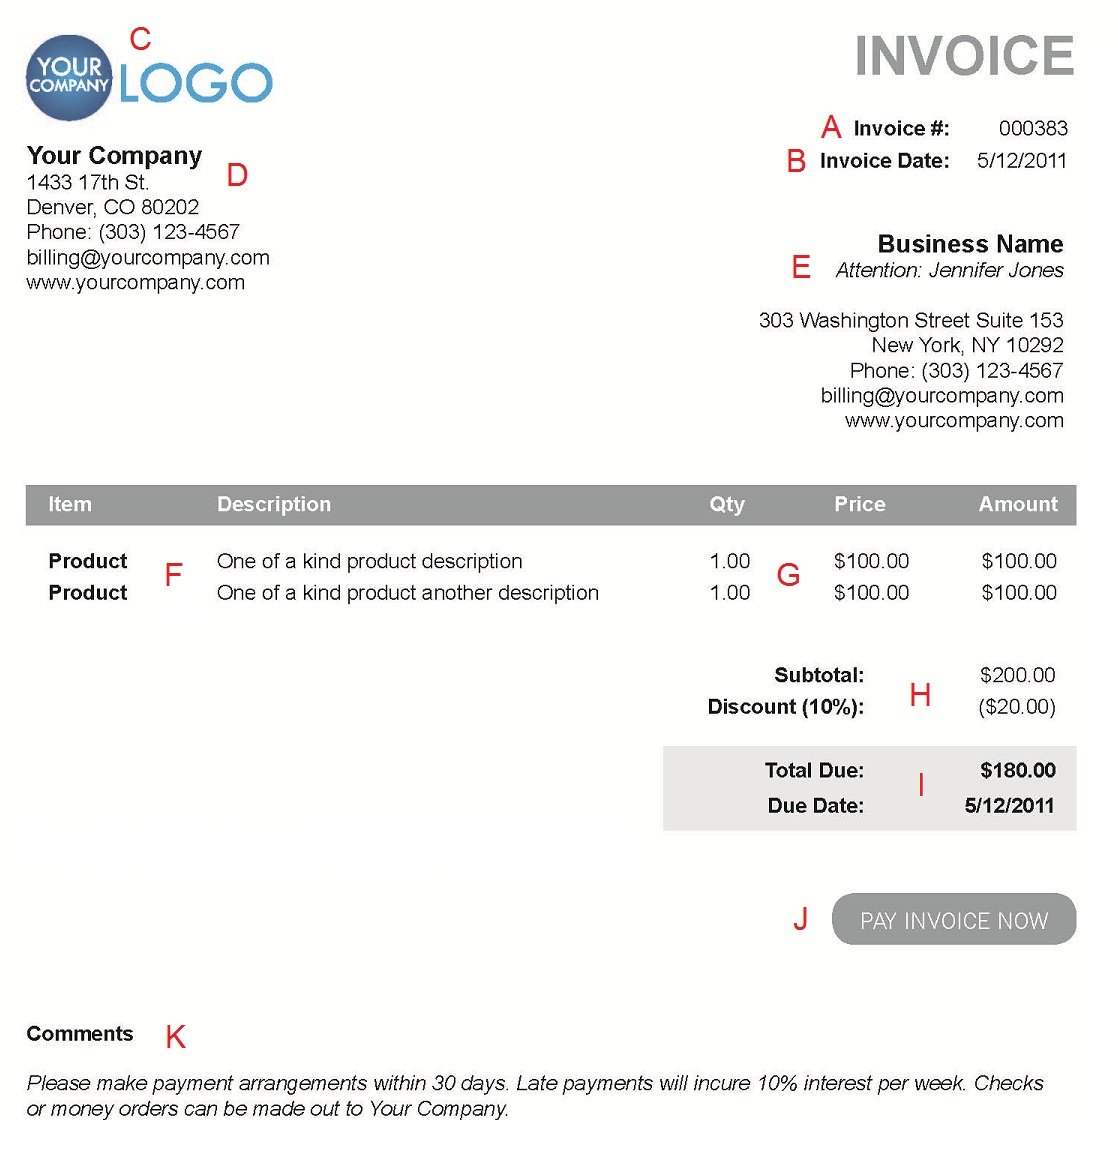 Ultrablogus  Stunning The  Different Sections Of An Electronic Payment Invoice With Likable A  With Comely Simple Invoice Format In Word Also Australia Invoice In Addition Open Invoicing And Restaurant Invoice Sample As Well As Close Invoice Finance Ltd Additionally Invoice Template Open Office Free From Paysimplecom With Ultrablogus  Likable The  Different Sections Of An Electronic Payment Invoice With Comely A  And Stunning Simple Invoice Format In Word Also Australia Invoice In Addition Open Invoicing From Paysimplecom